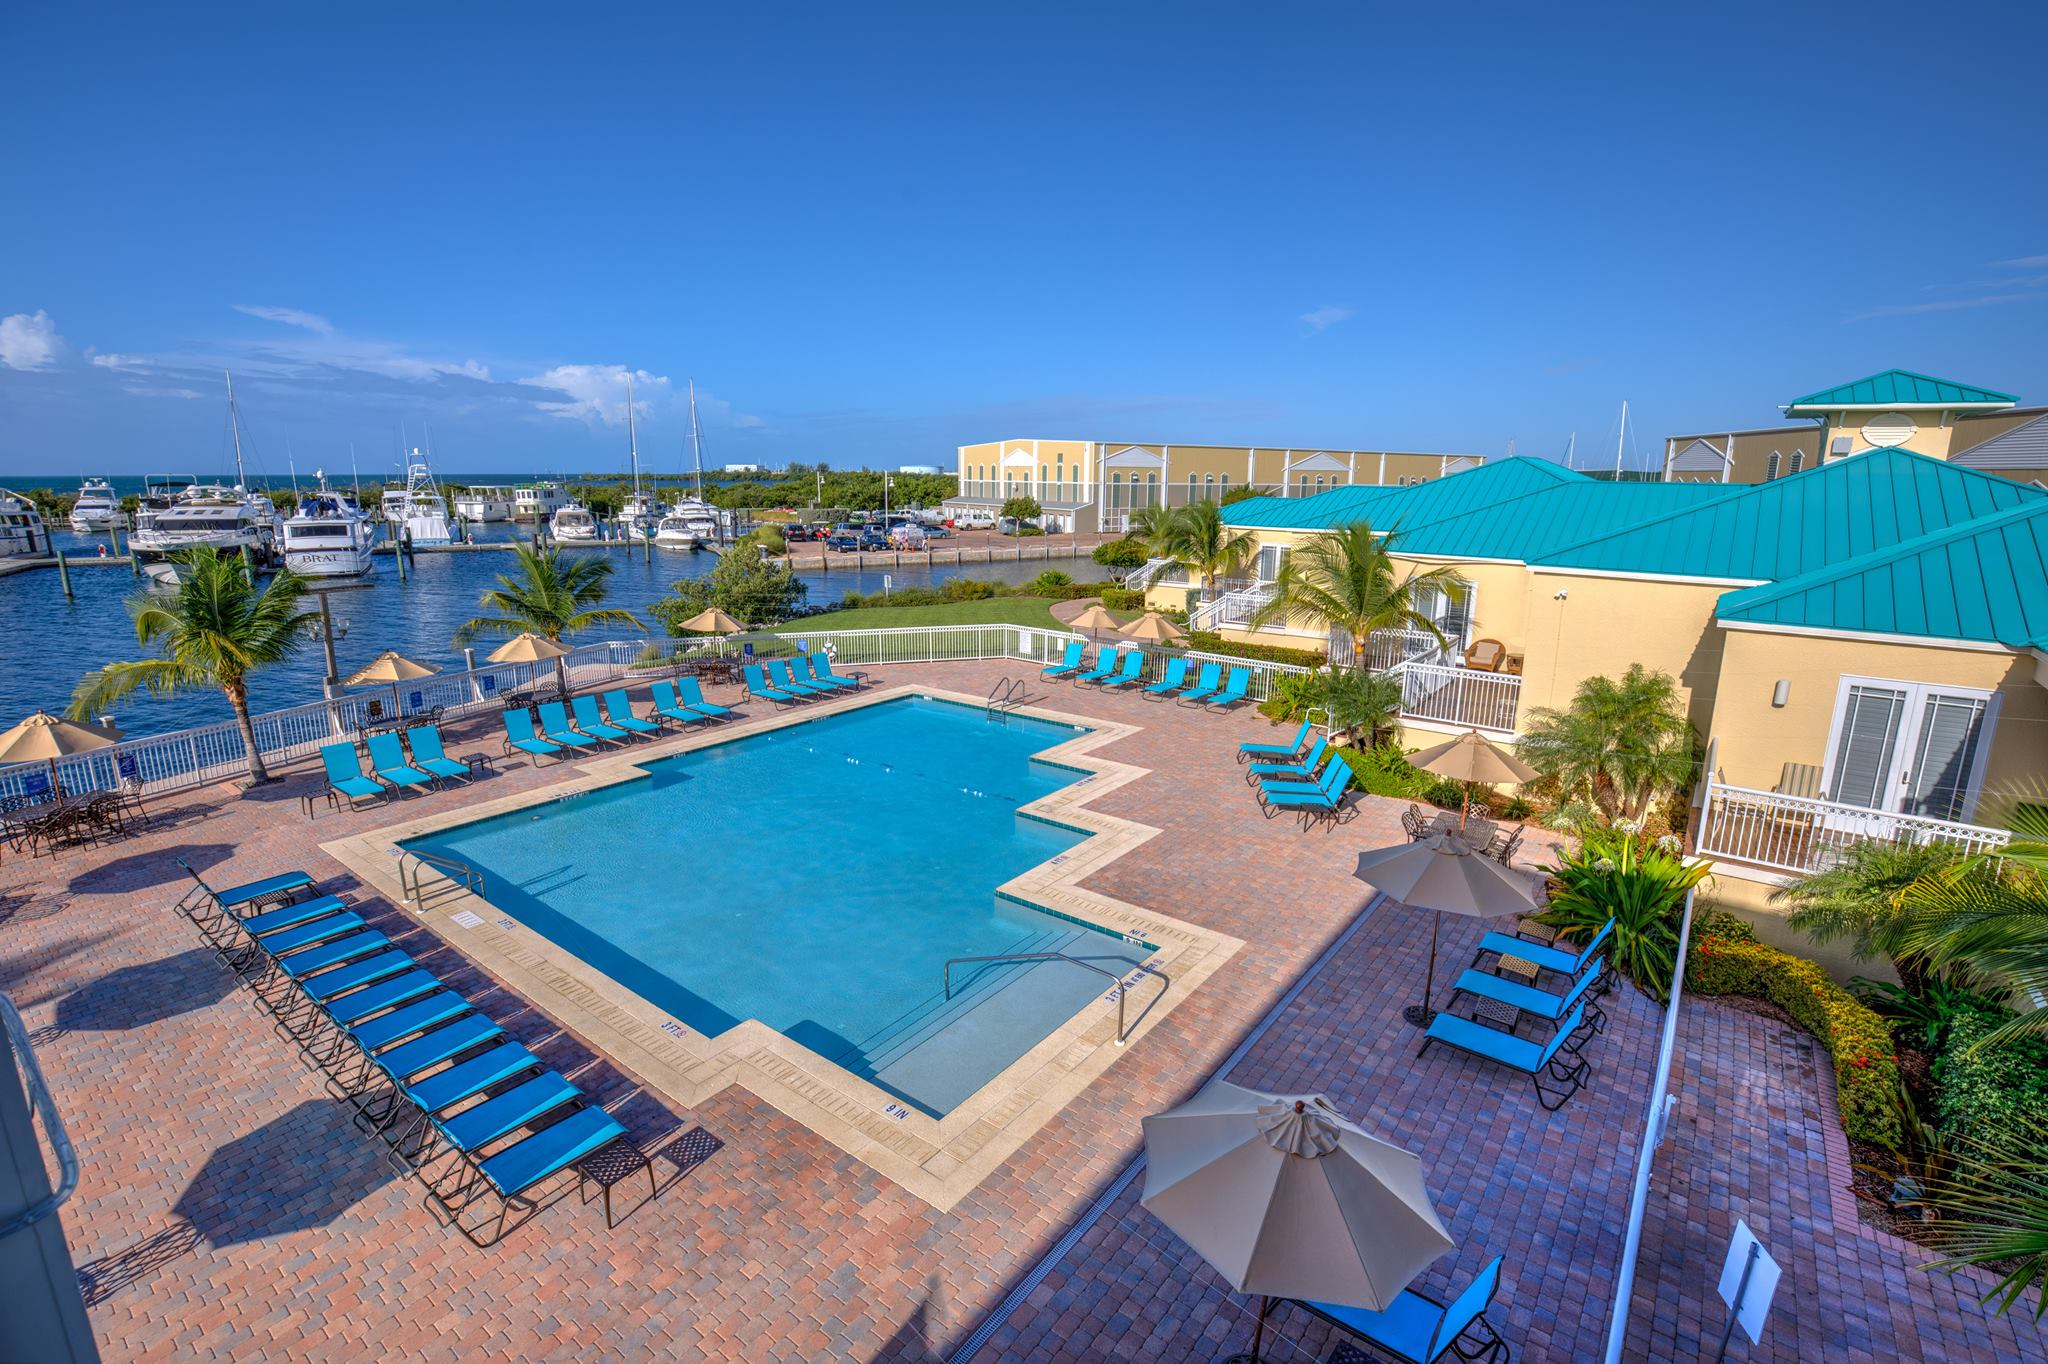 Key West Harbour Marina swimming pool